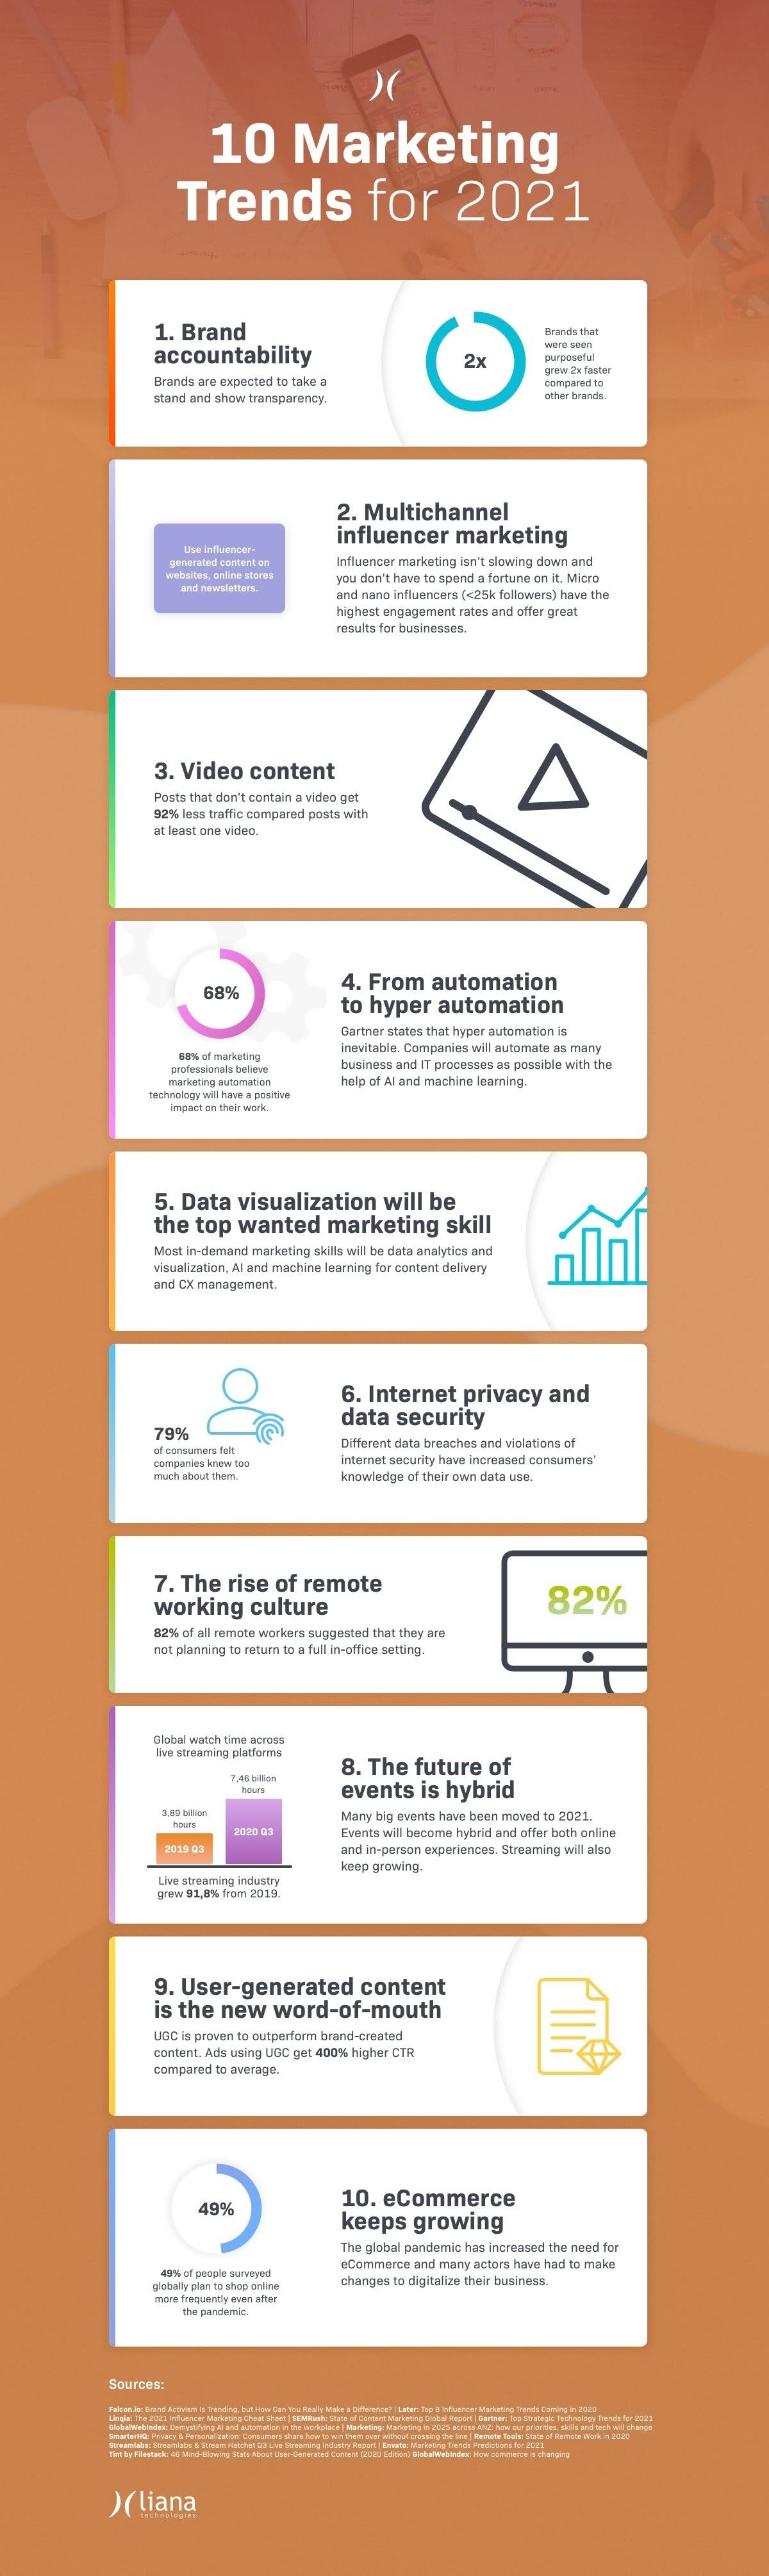 10-marketing-trends-for-2021-infographic